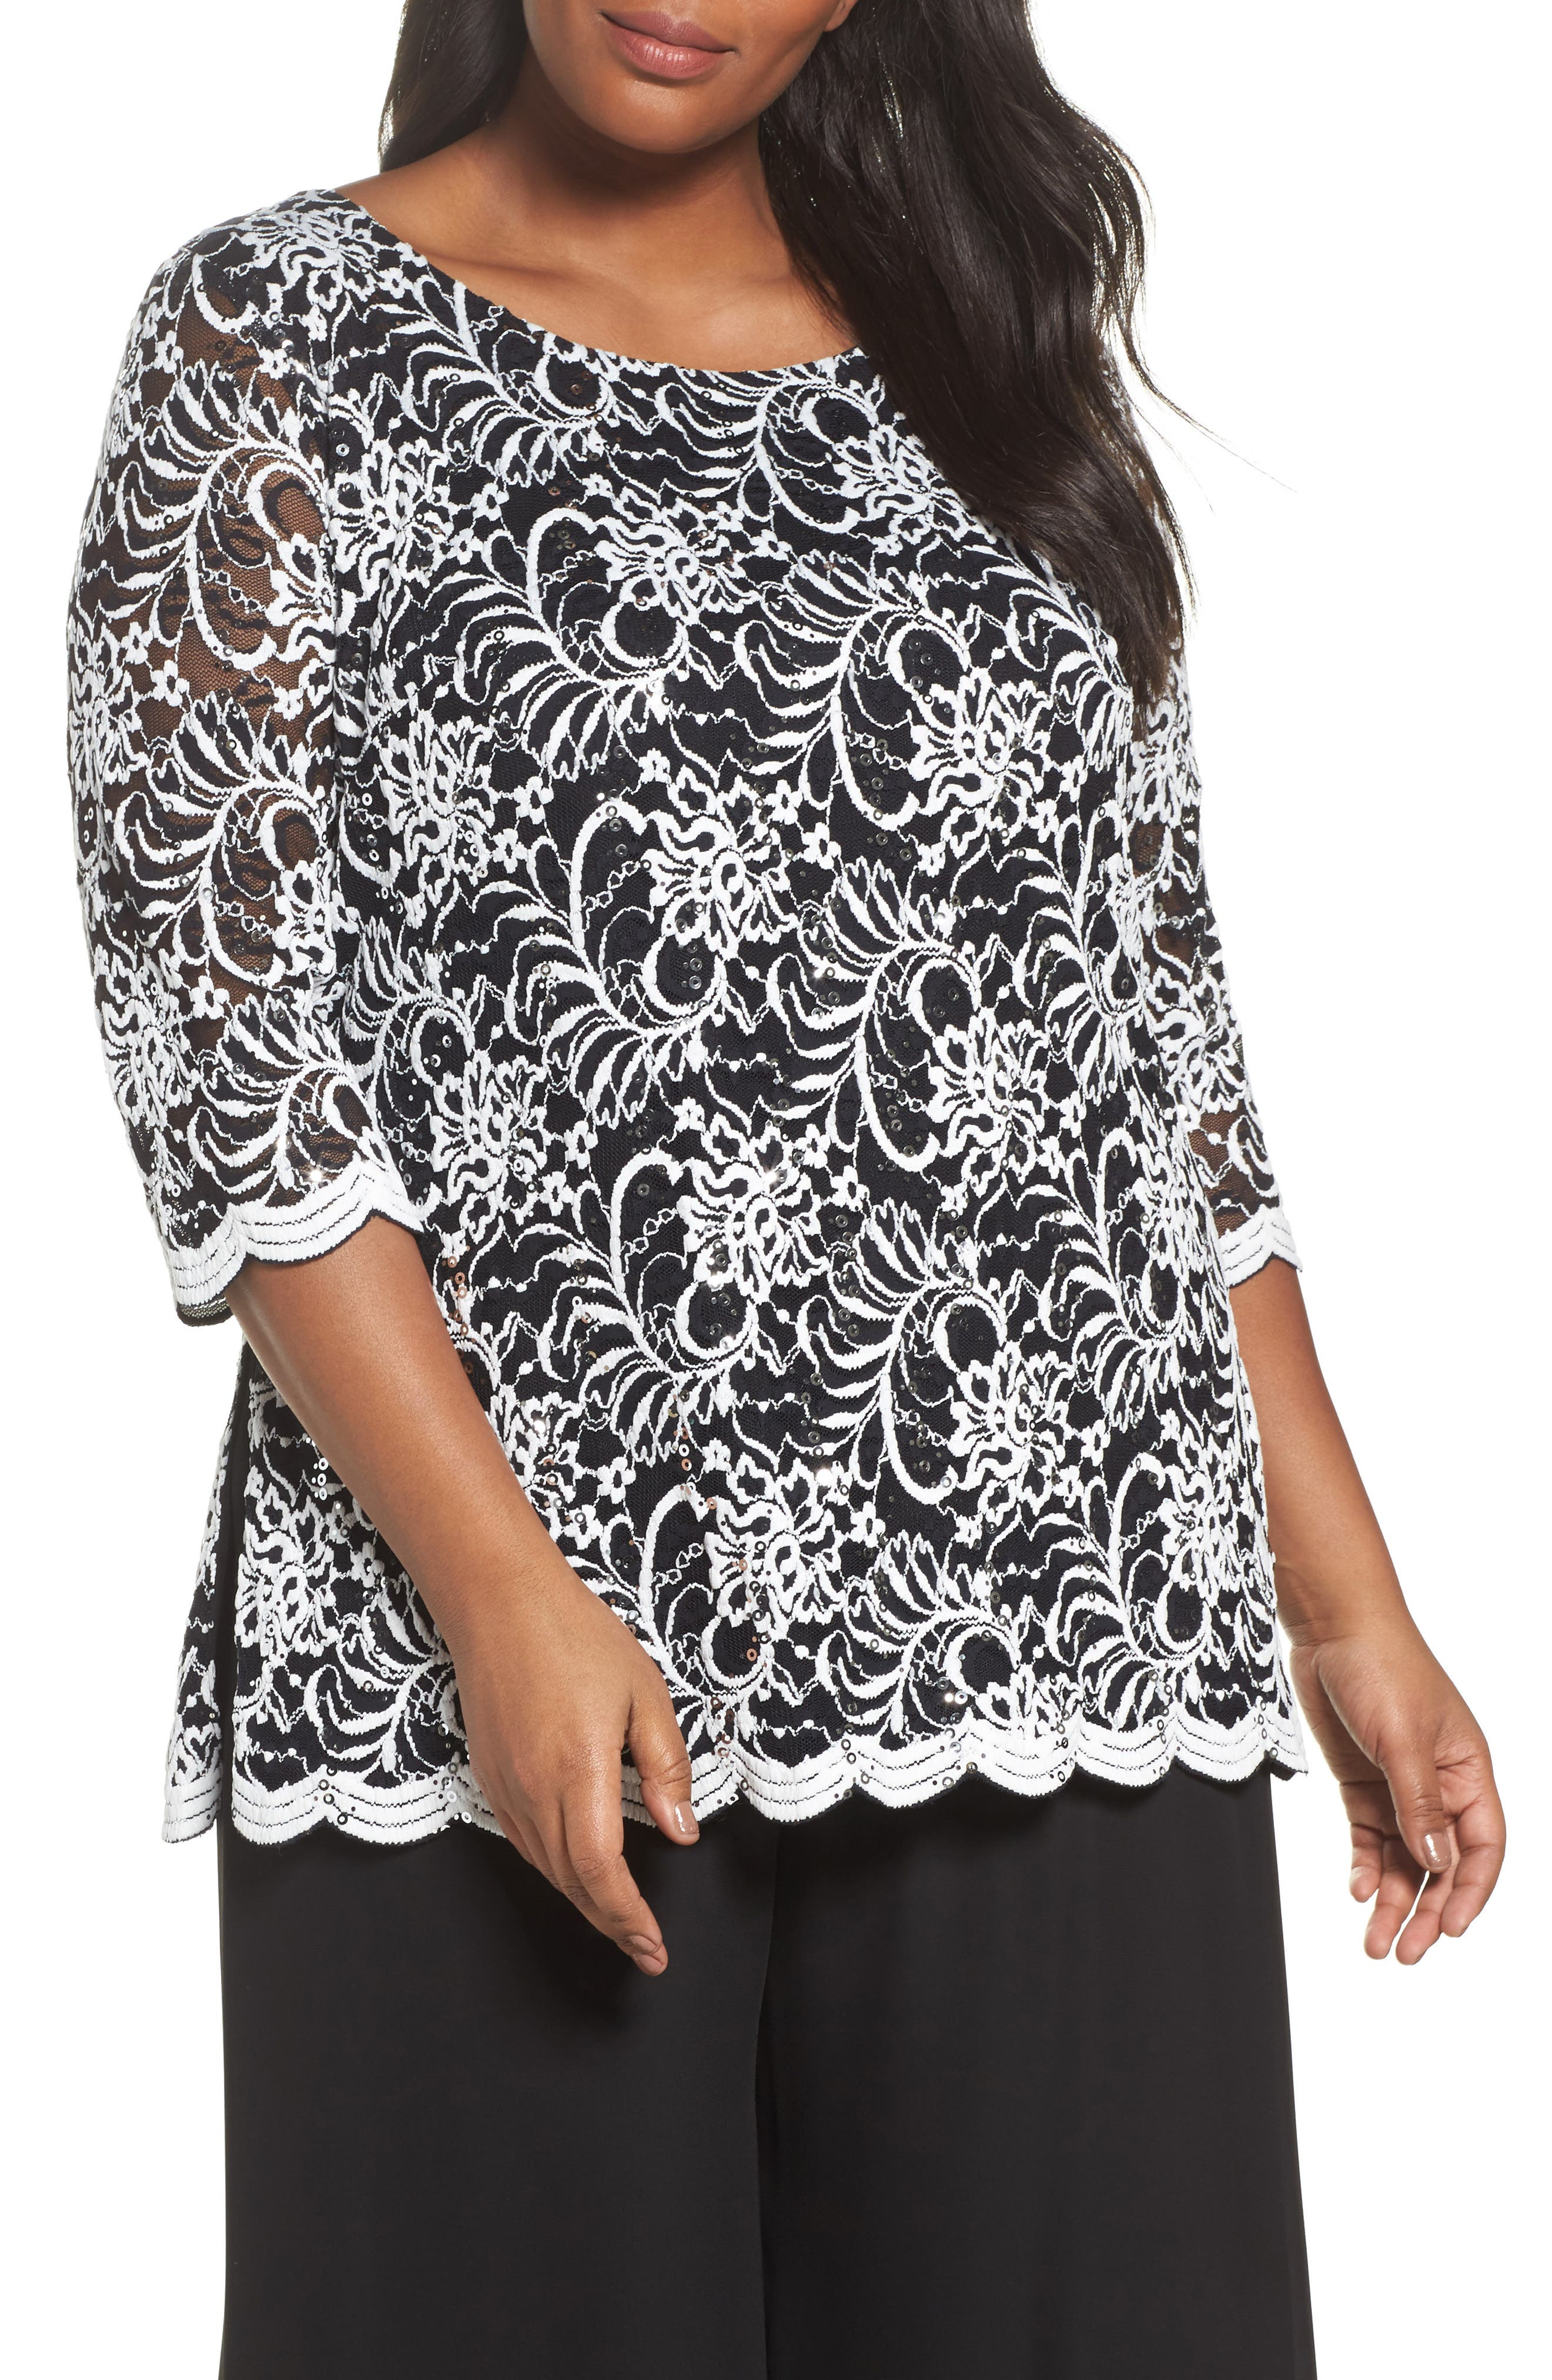 Embroidered Tulle Blouse,                             Main thumbnail 1, color,                             Black/ White